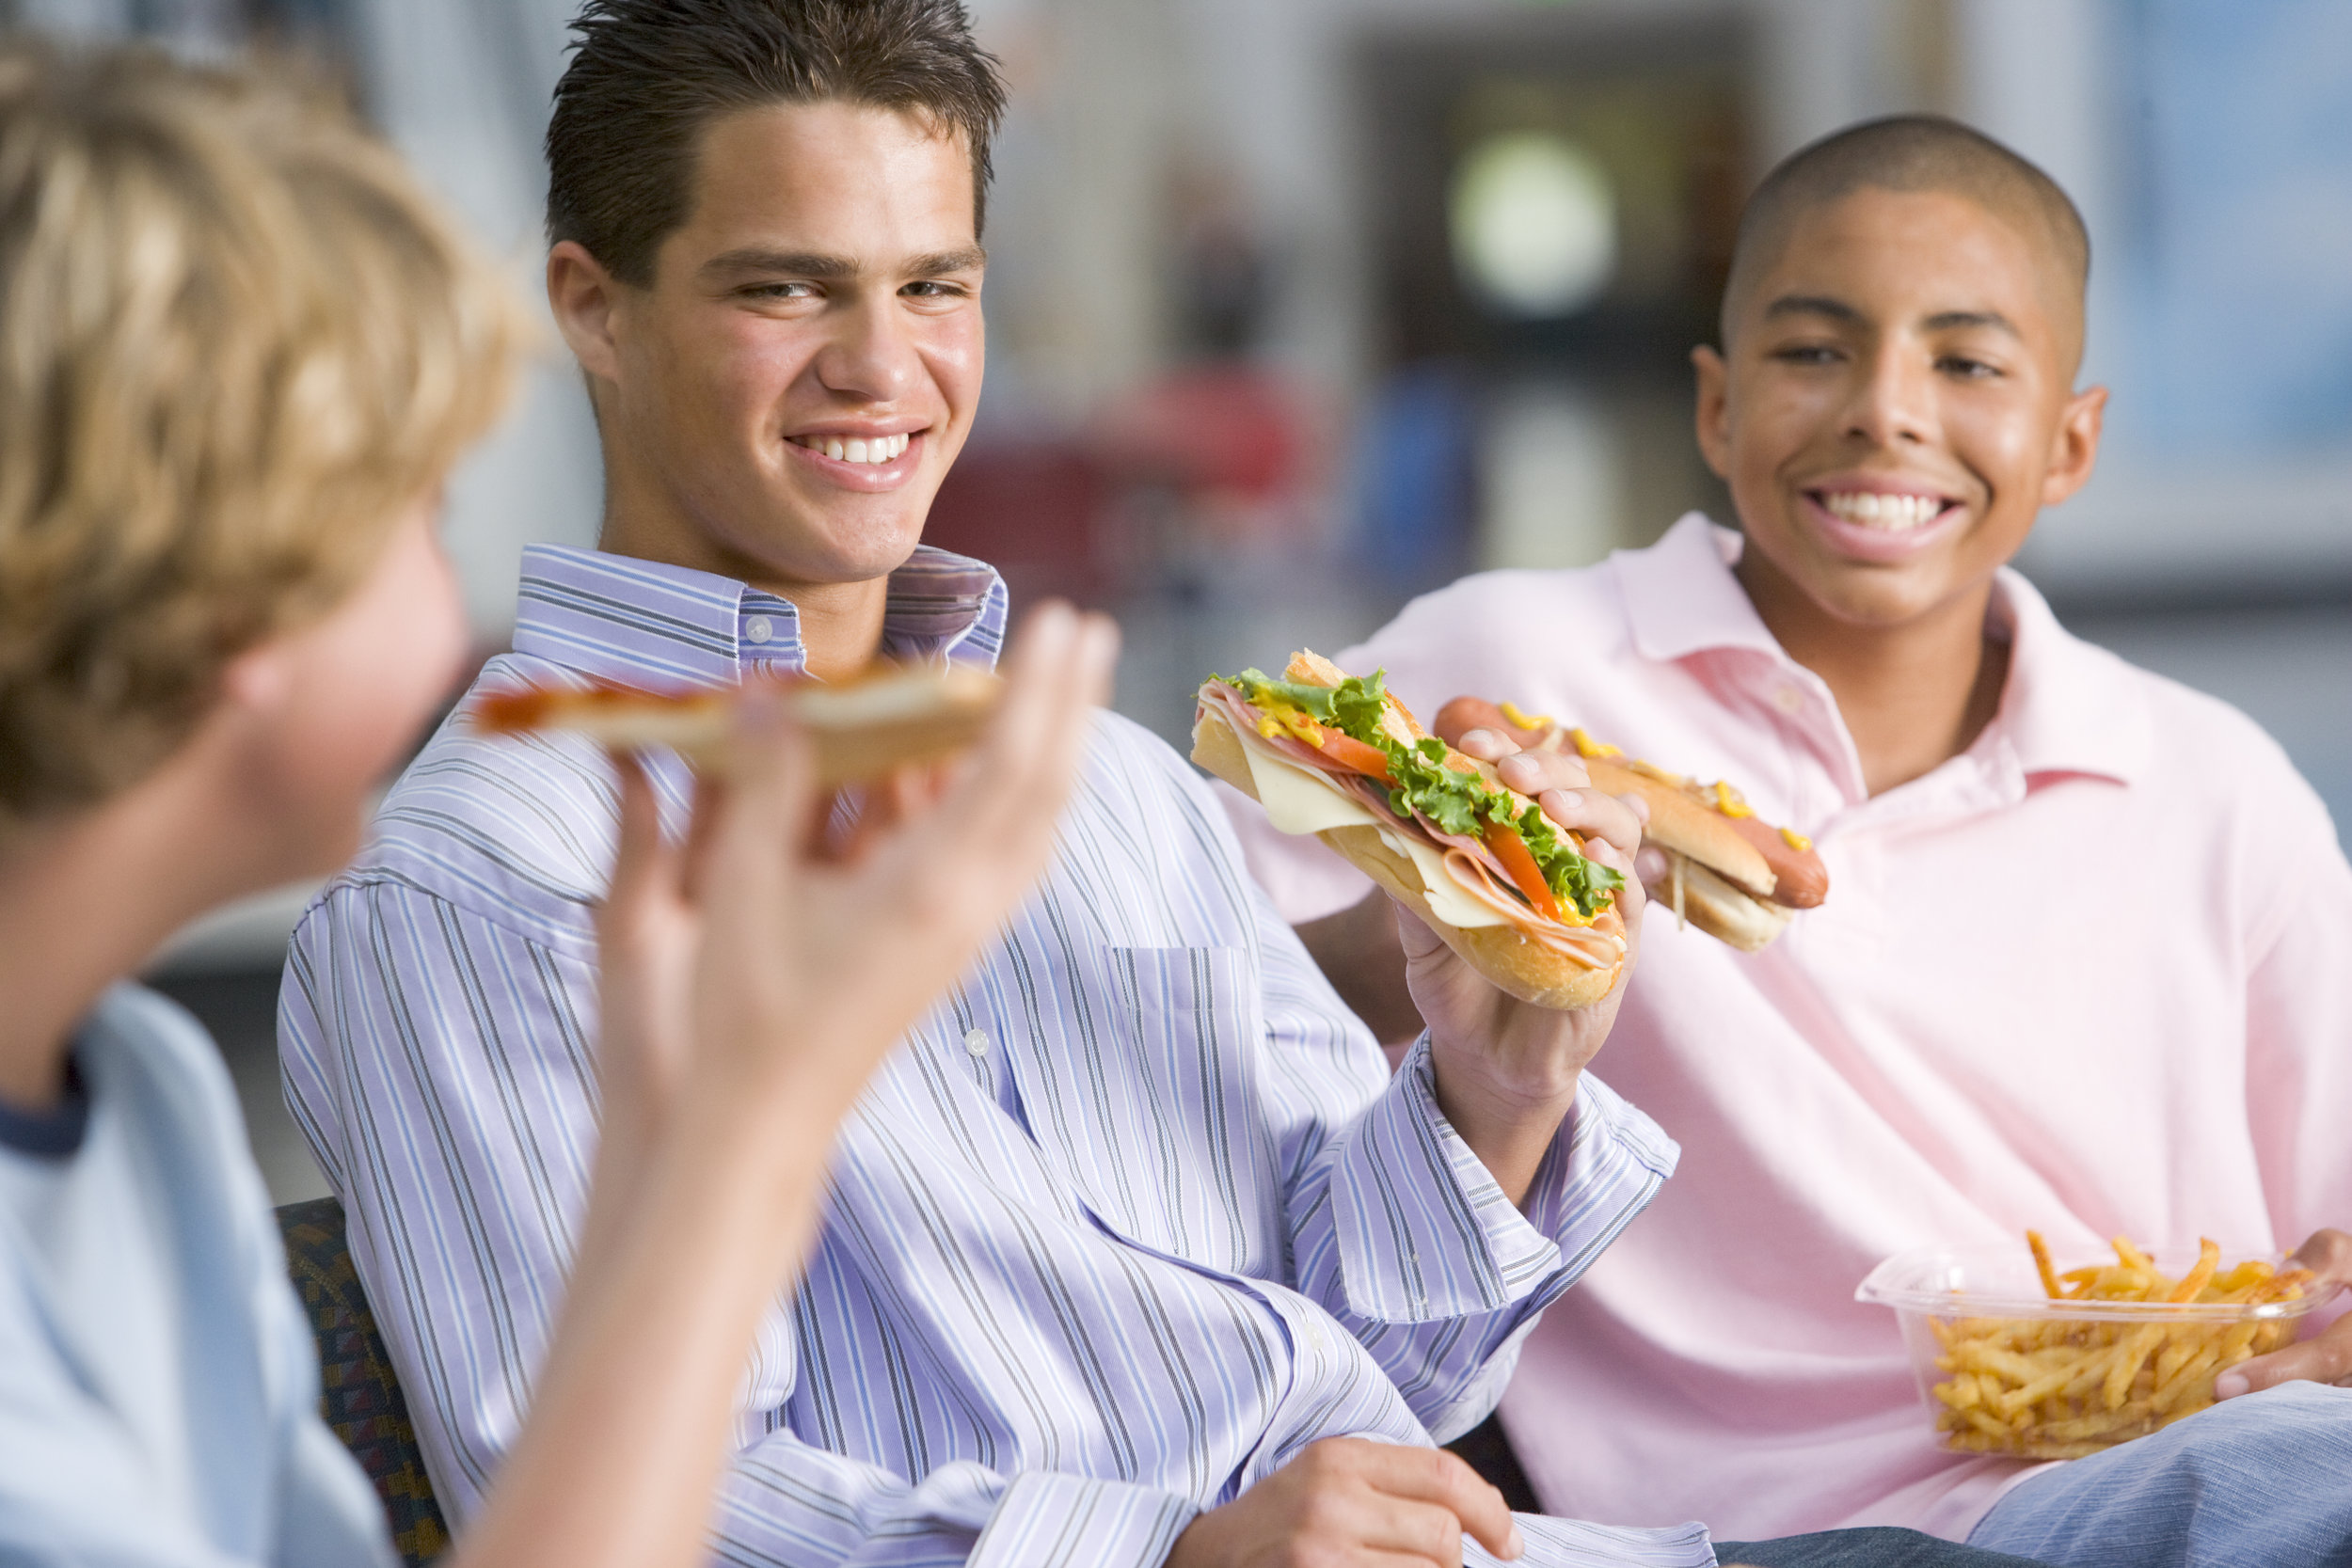 teenage-boys-enjoying-fast-food-lunches-together_BYQe0Crs.jpg